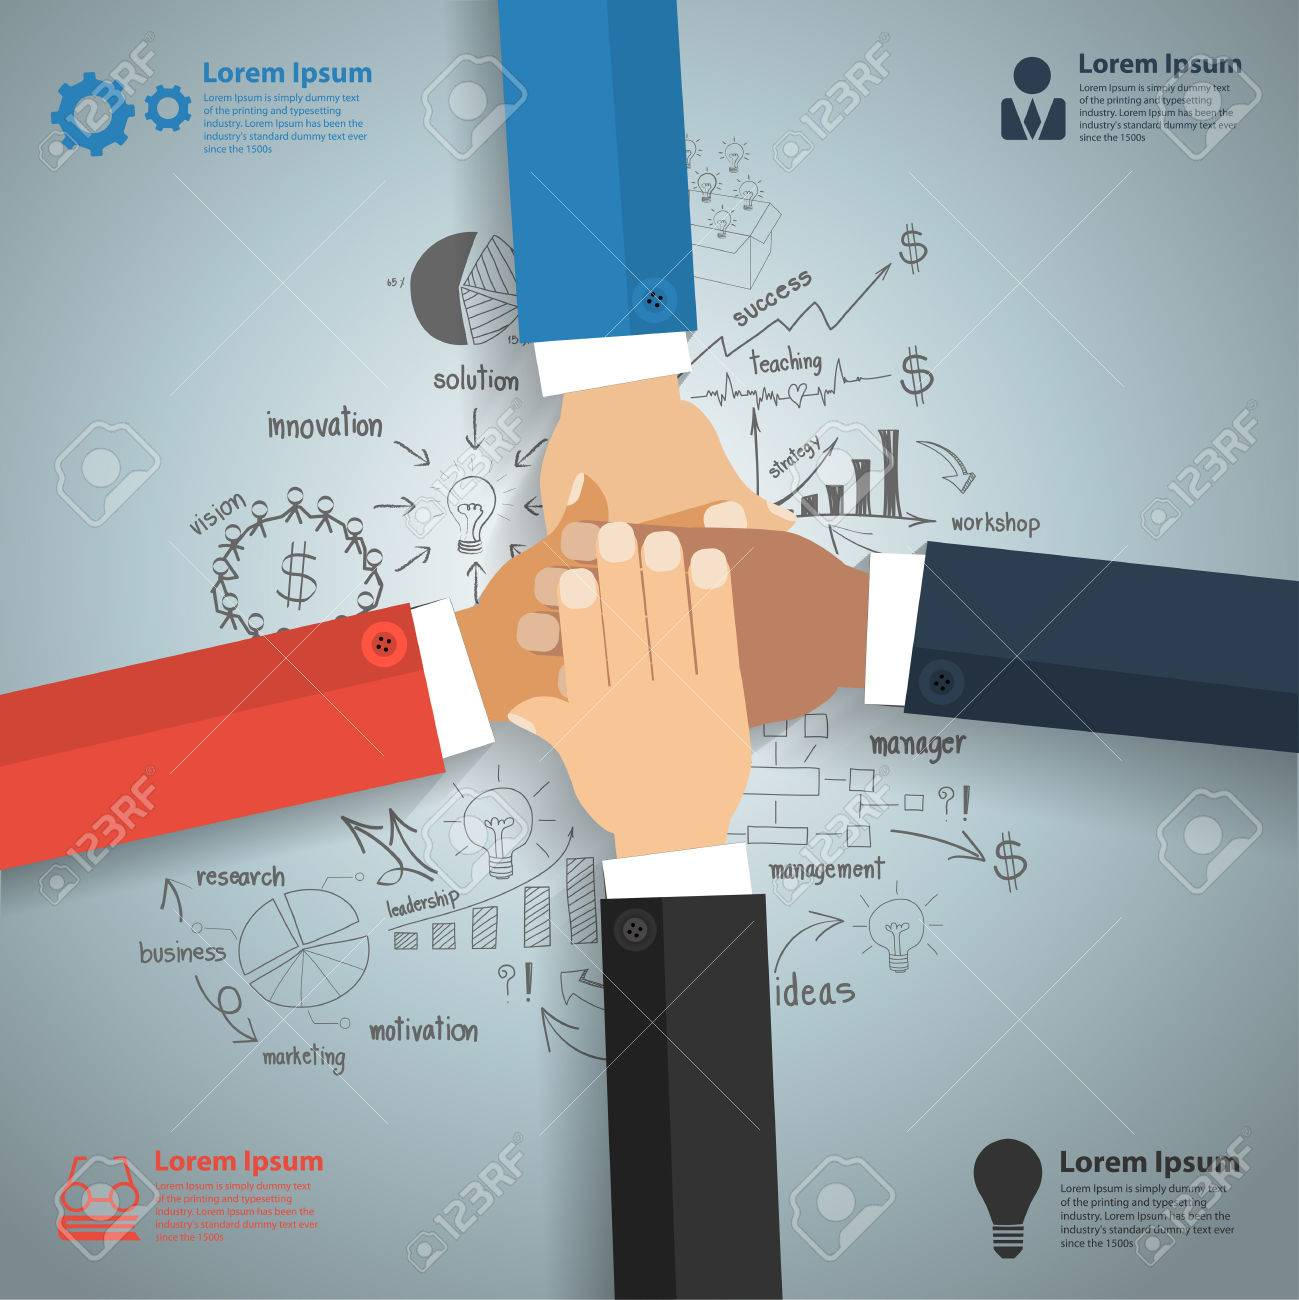 Business Team Showing Unity With Their Hands Together With Creative ...